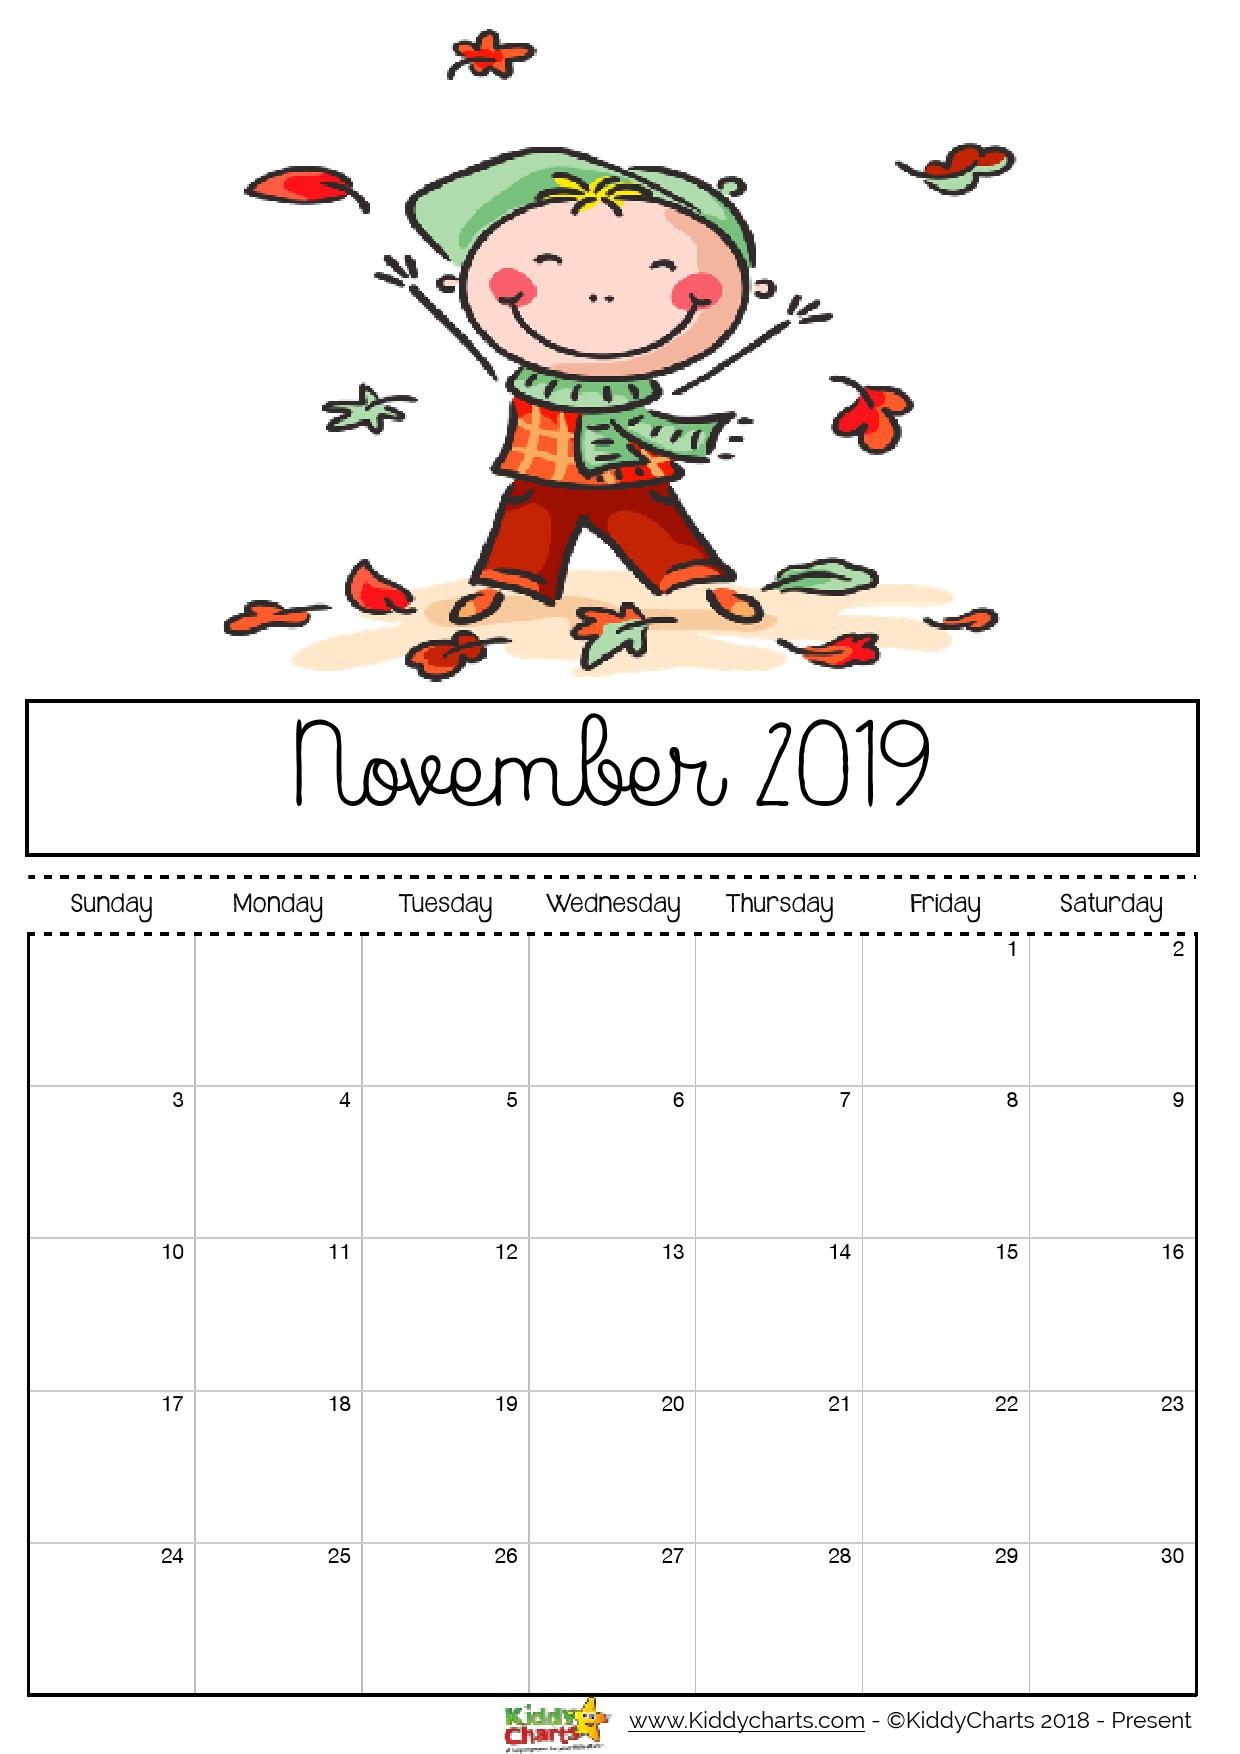 November 2019 printable calendar; boy kicking and playing with leaves - now that looks fun doesn't it?!? #printable #kidsprintables #2019calendar